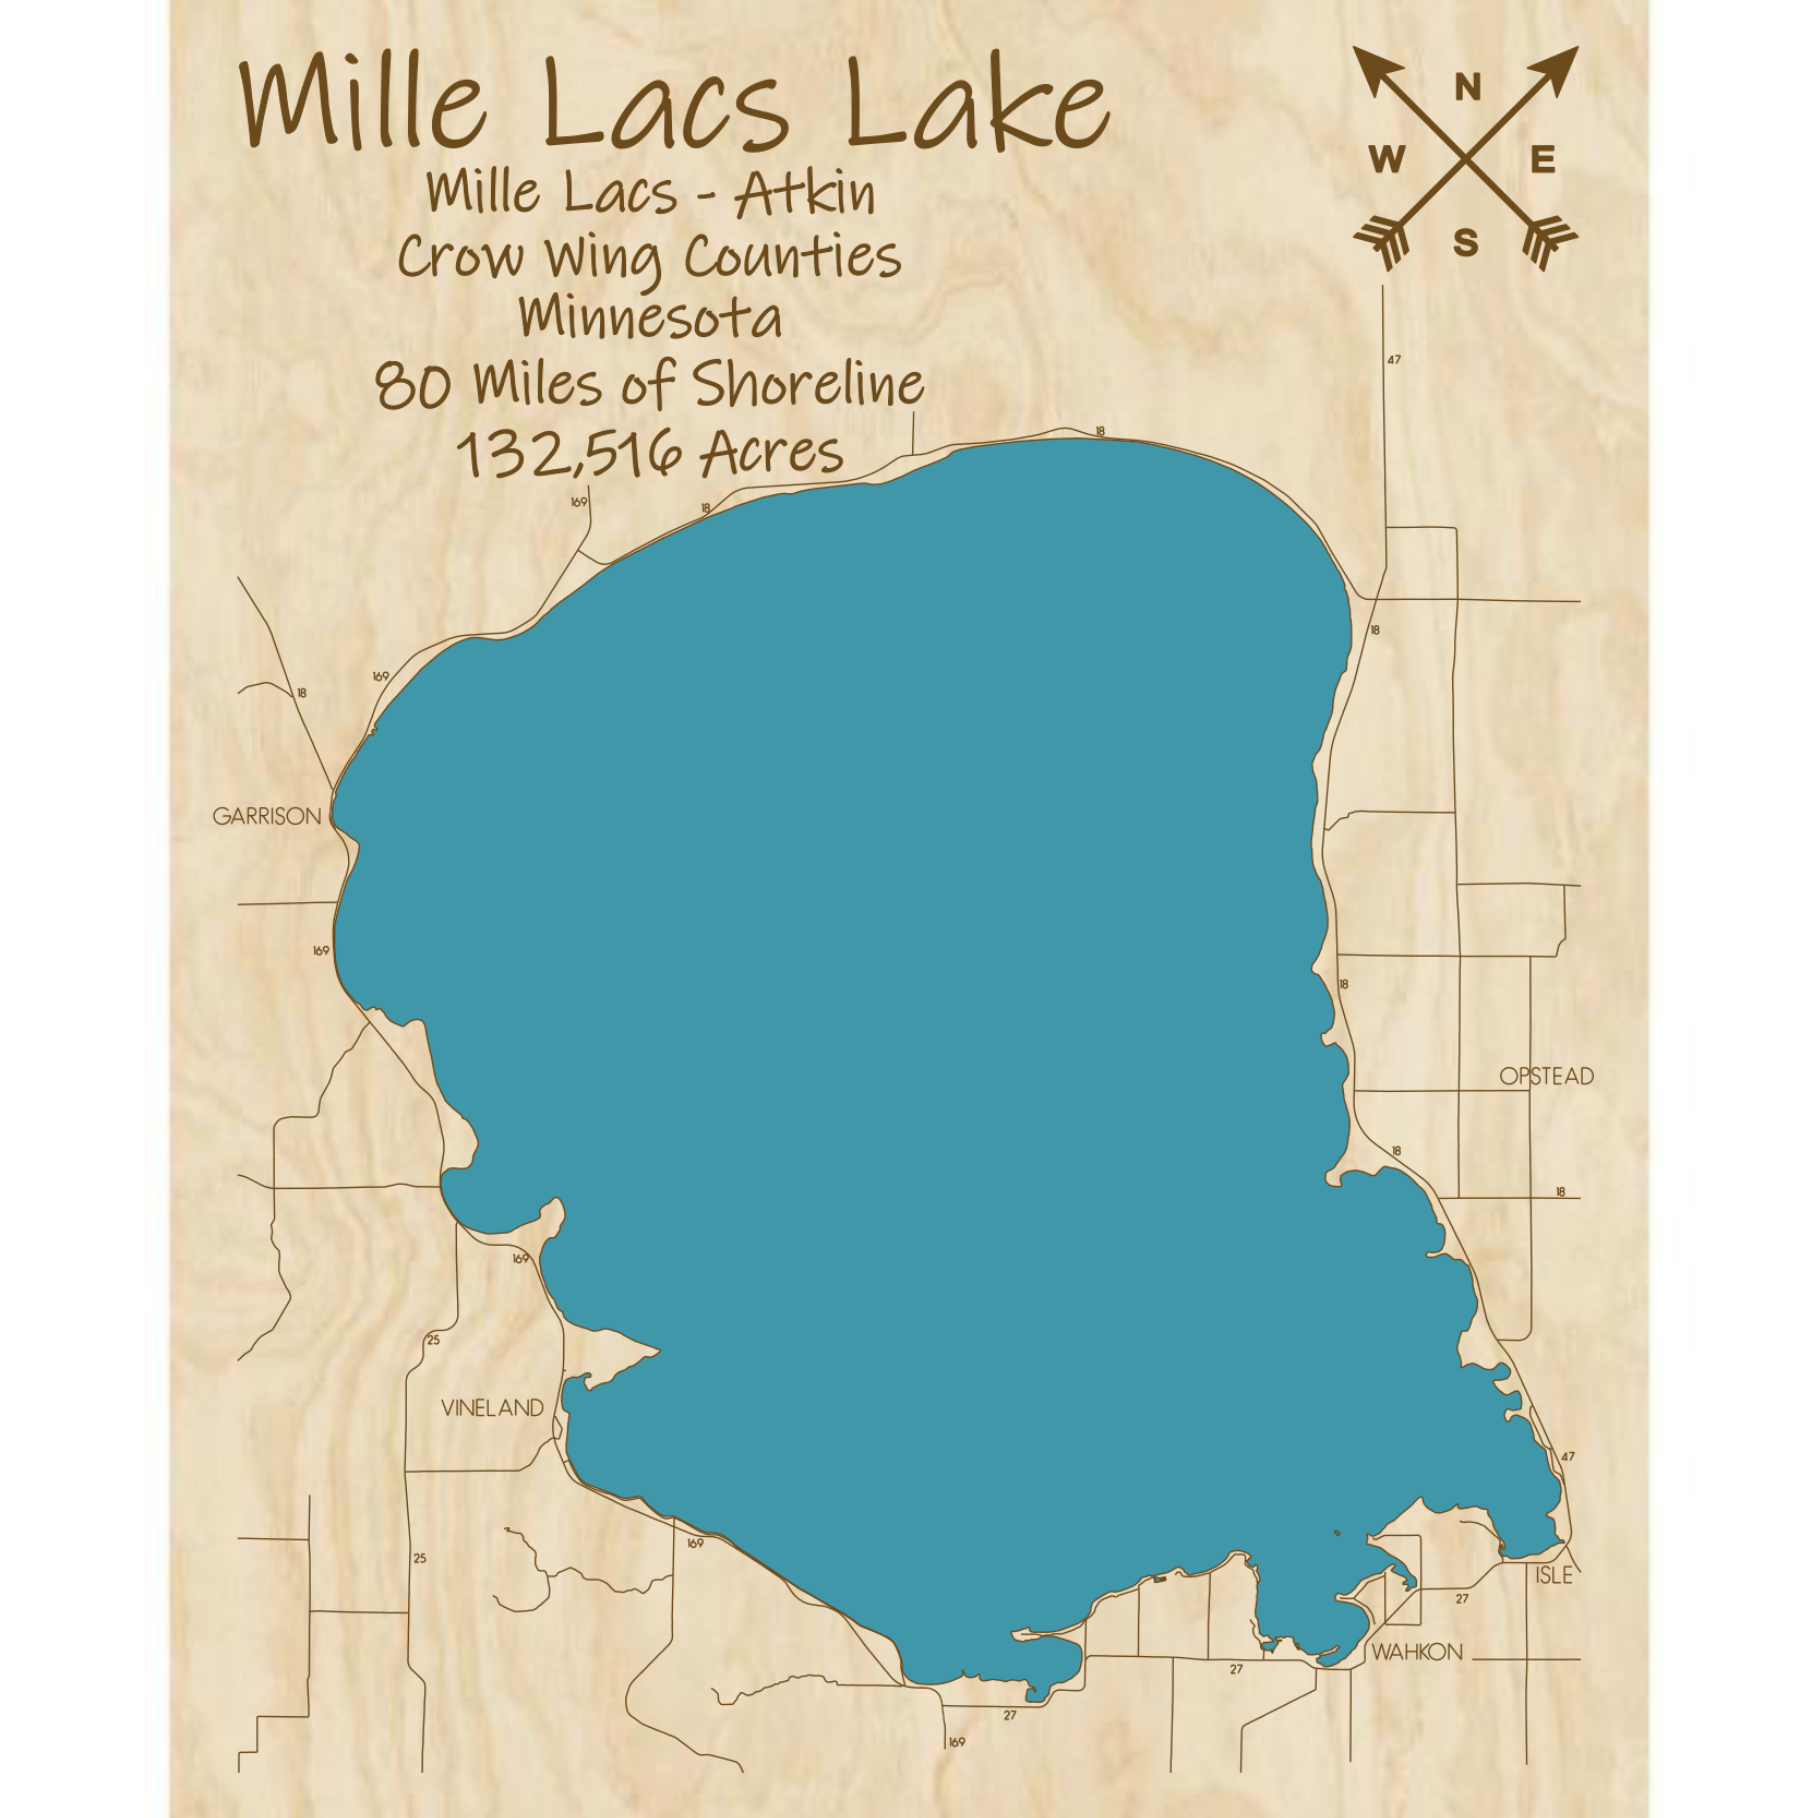 Mille Lacs Lake Multi-layered Wood Lake